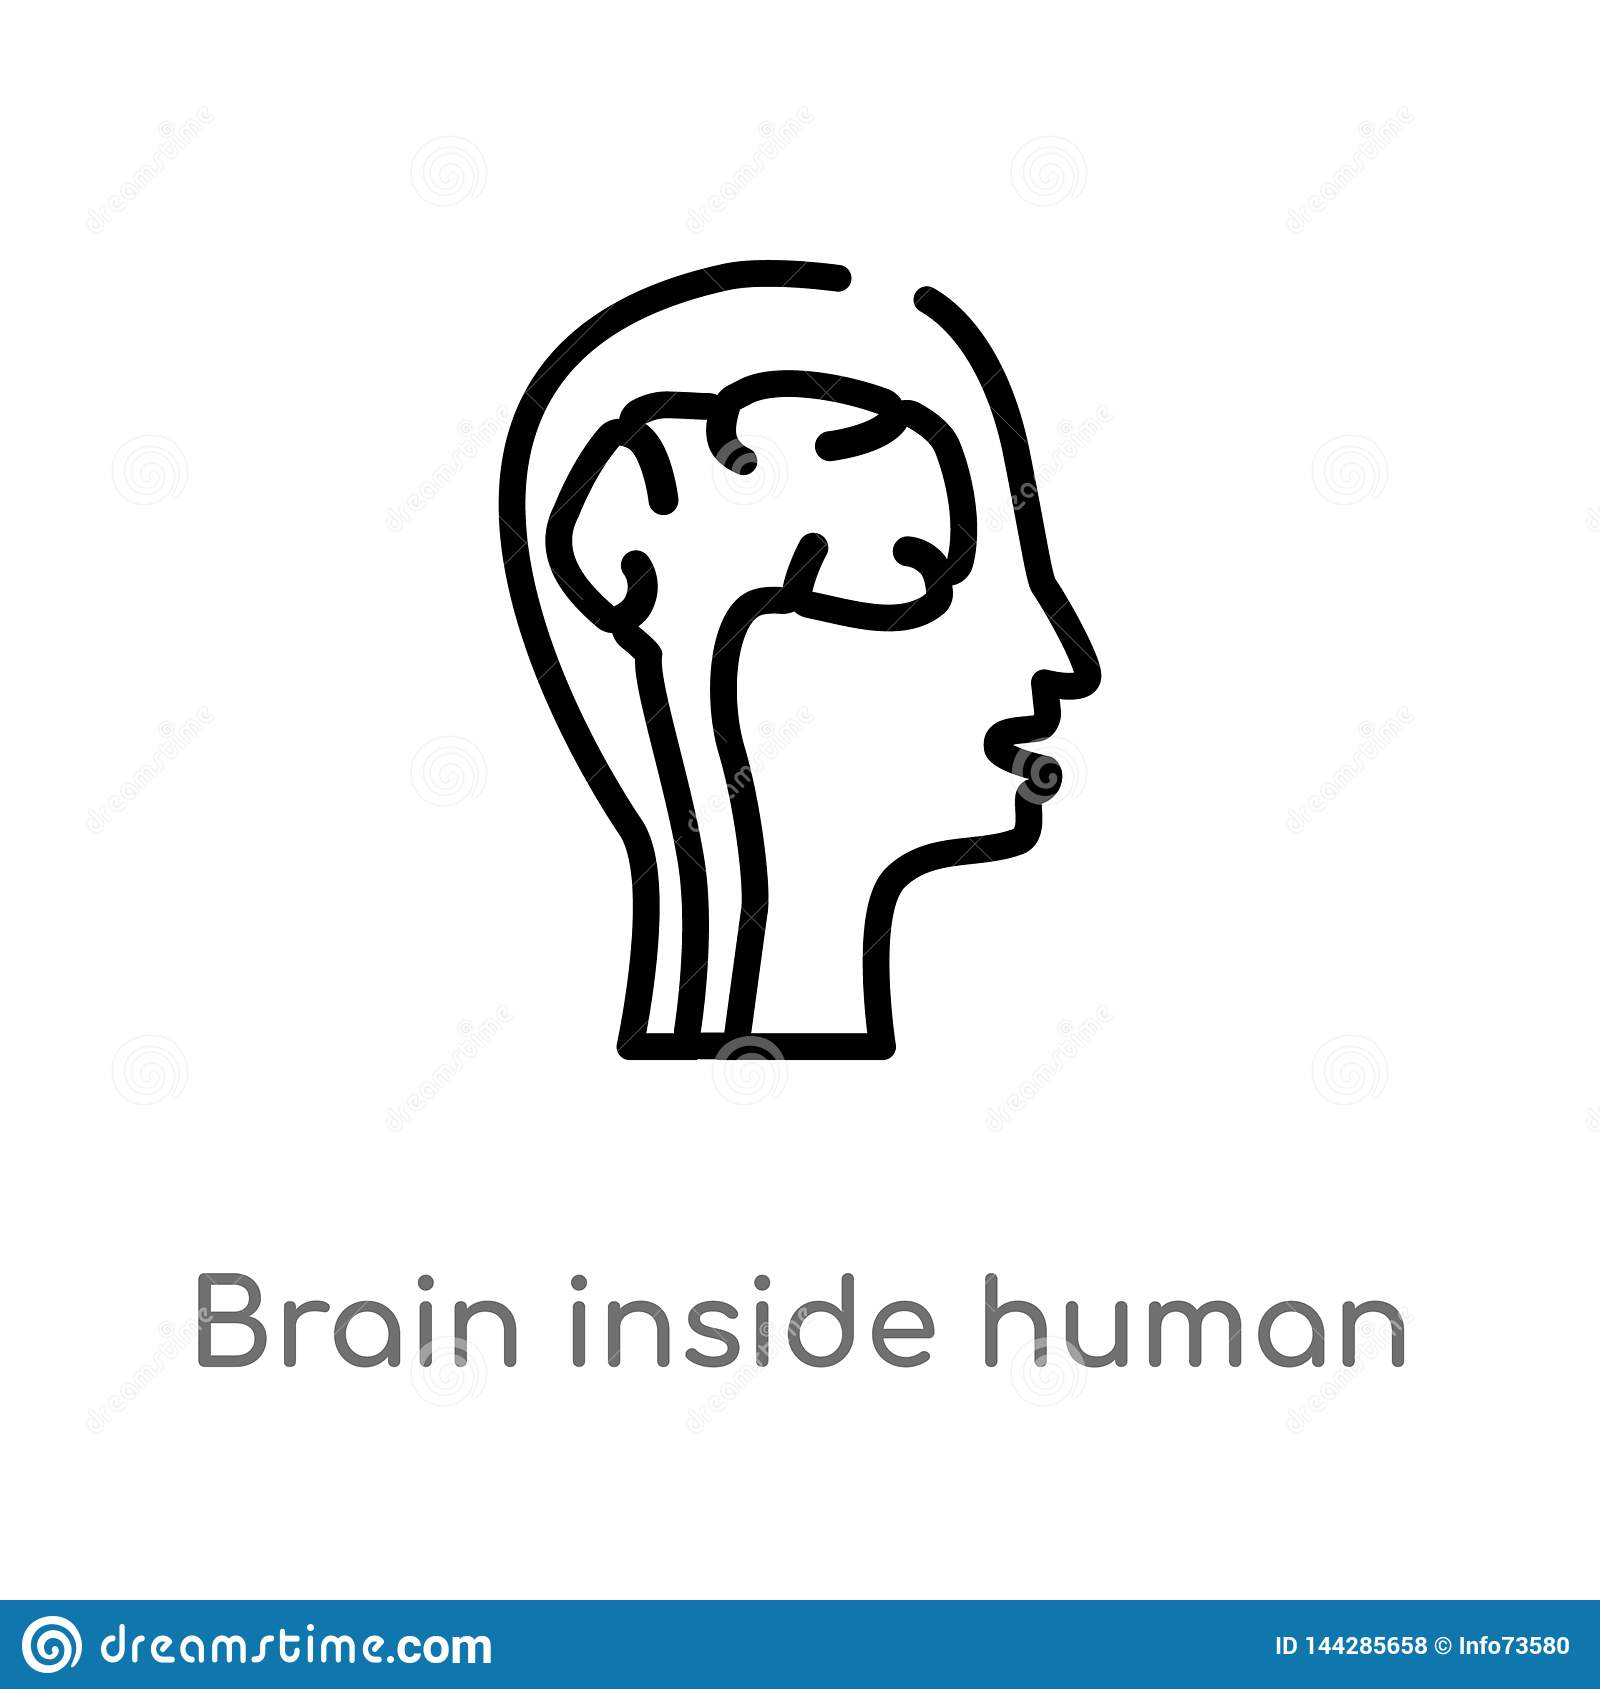 Outline Brain Inside Human Head Vector Icon  Isolated Black